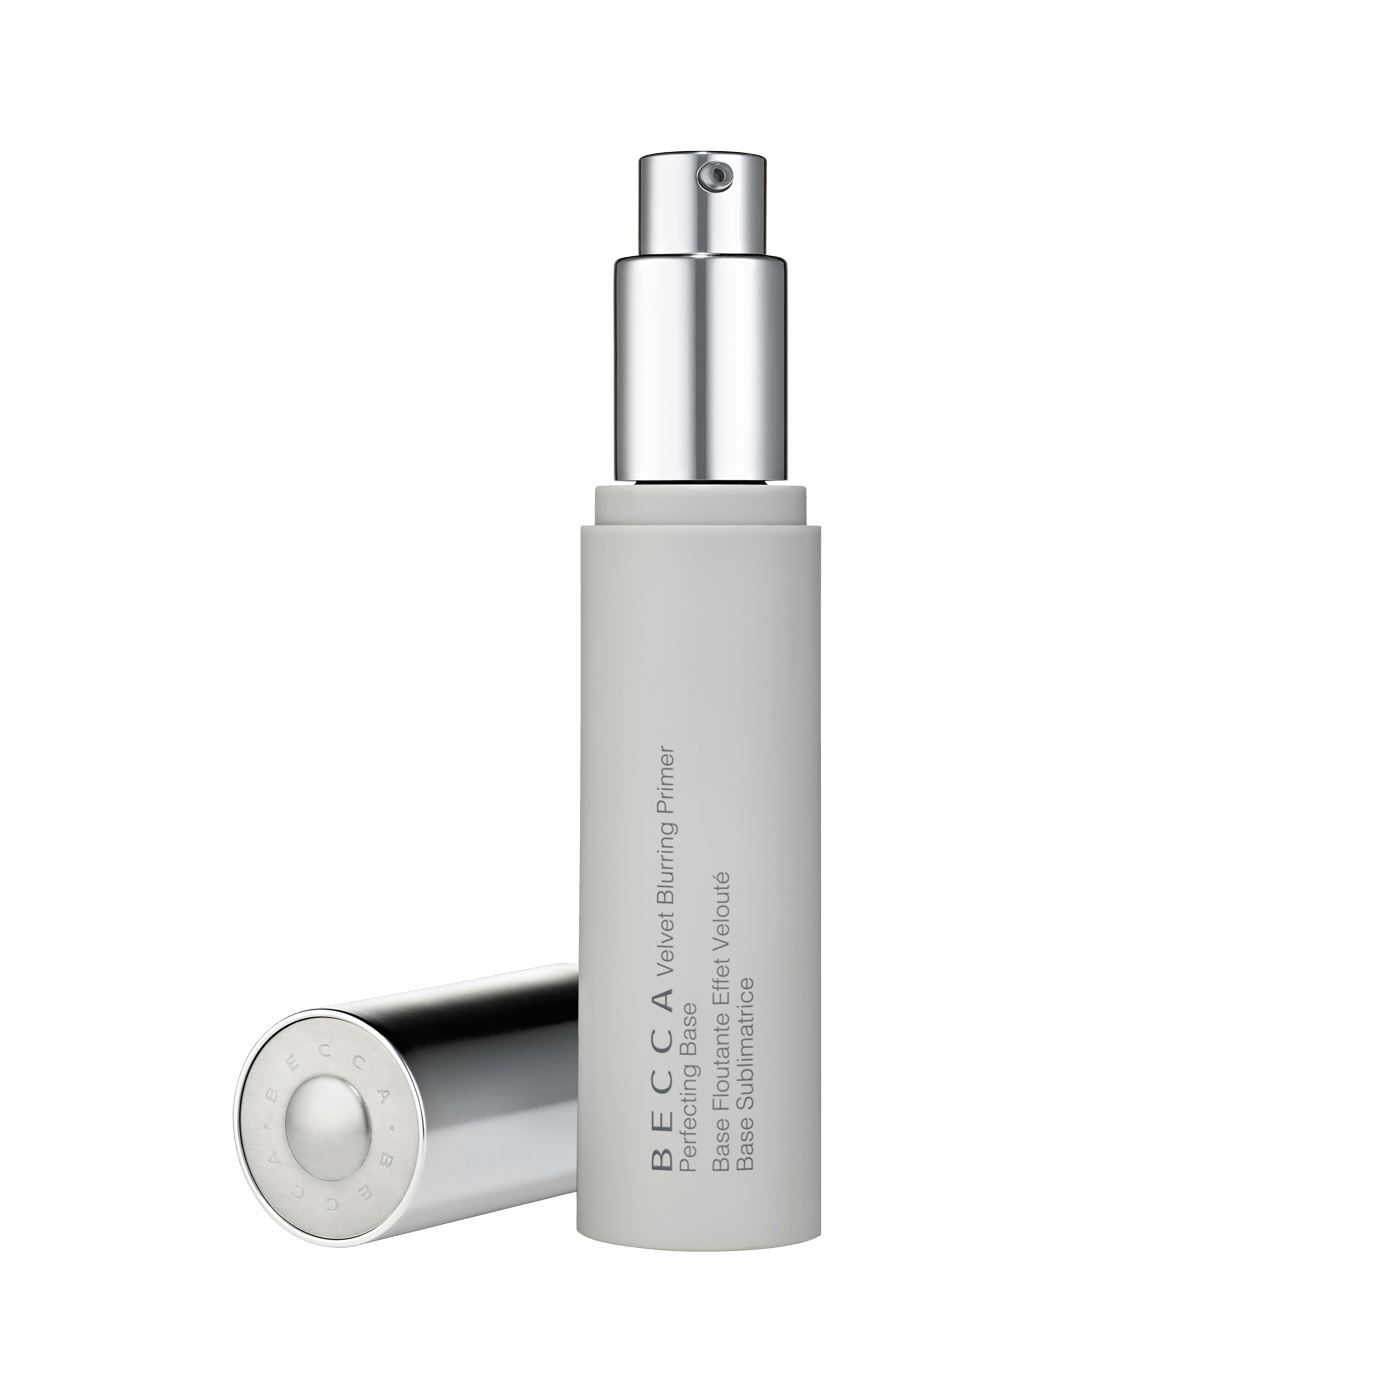 Velvet Blurring Primer Perfecting Base